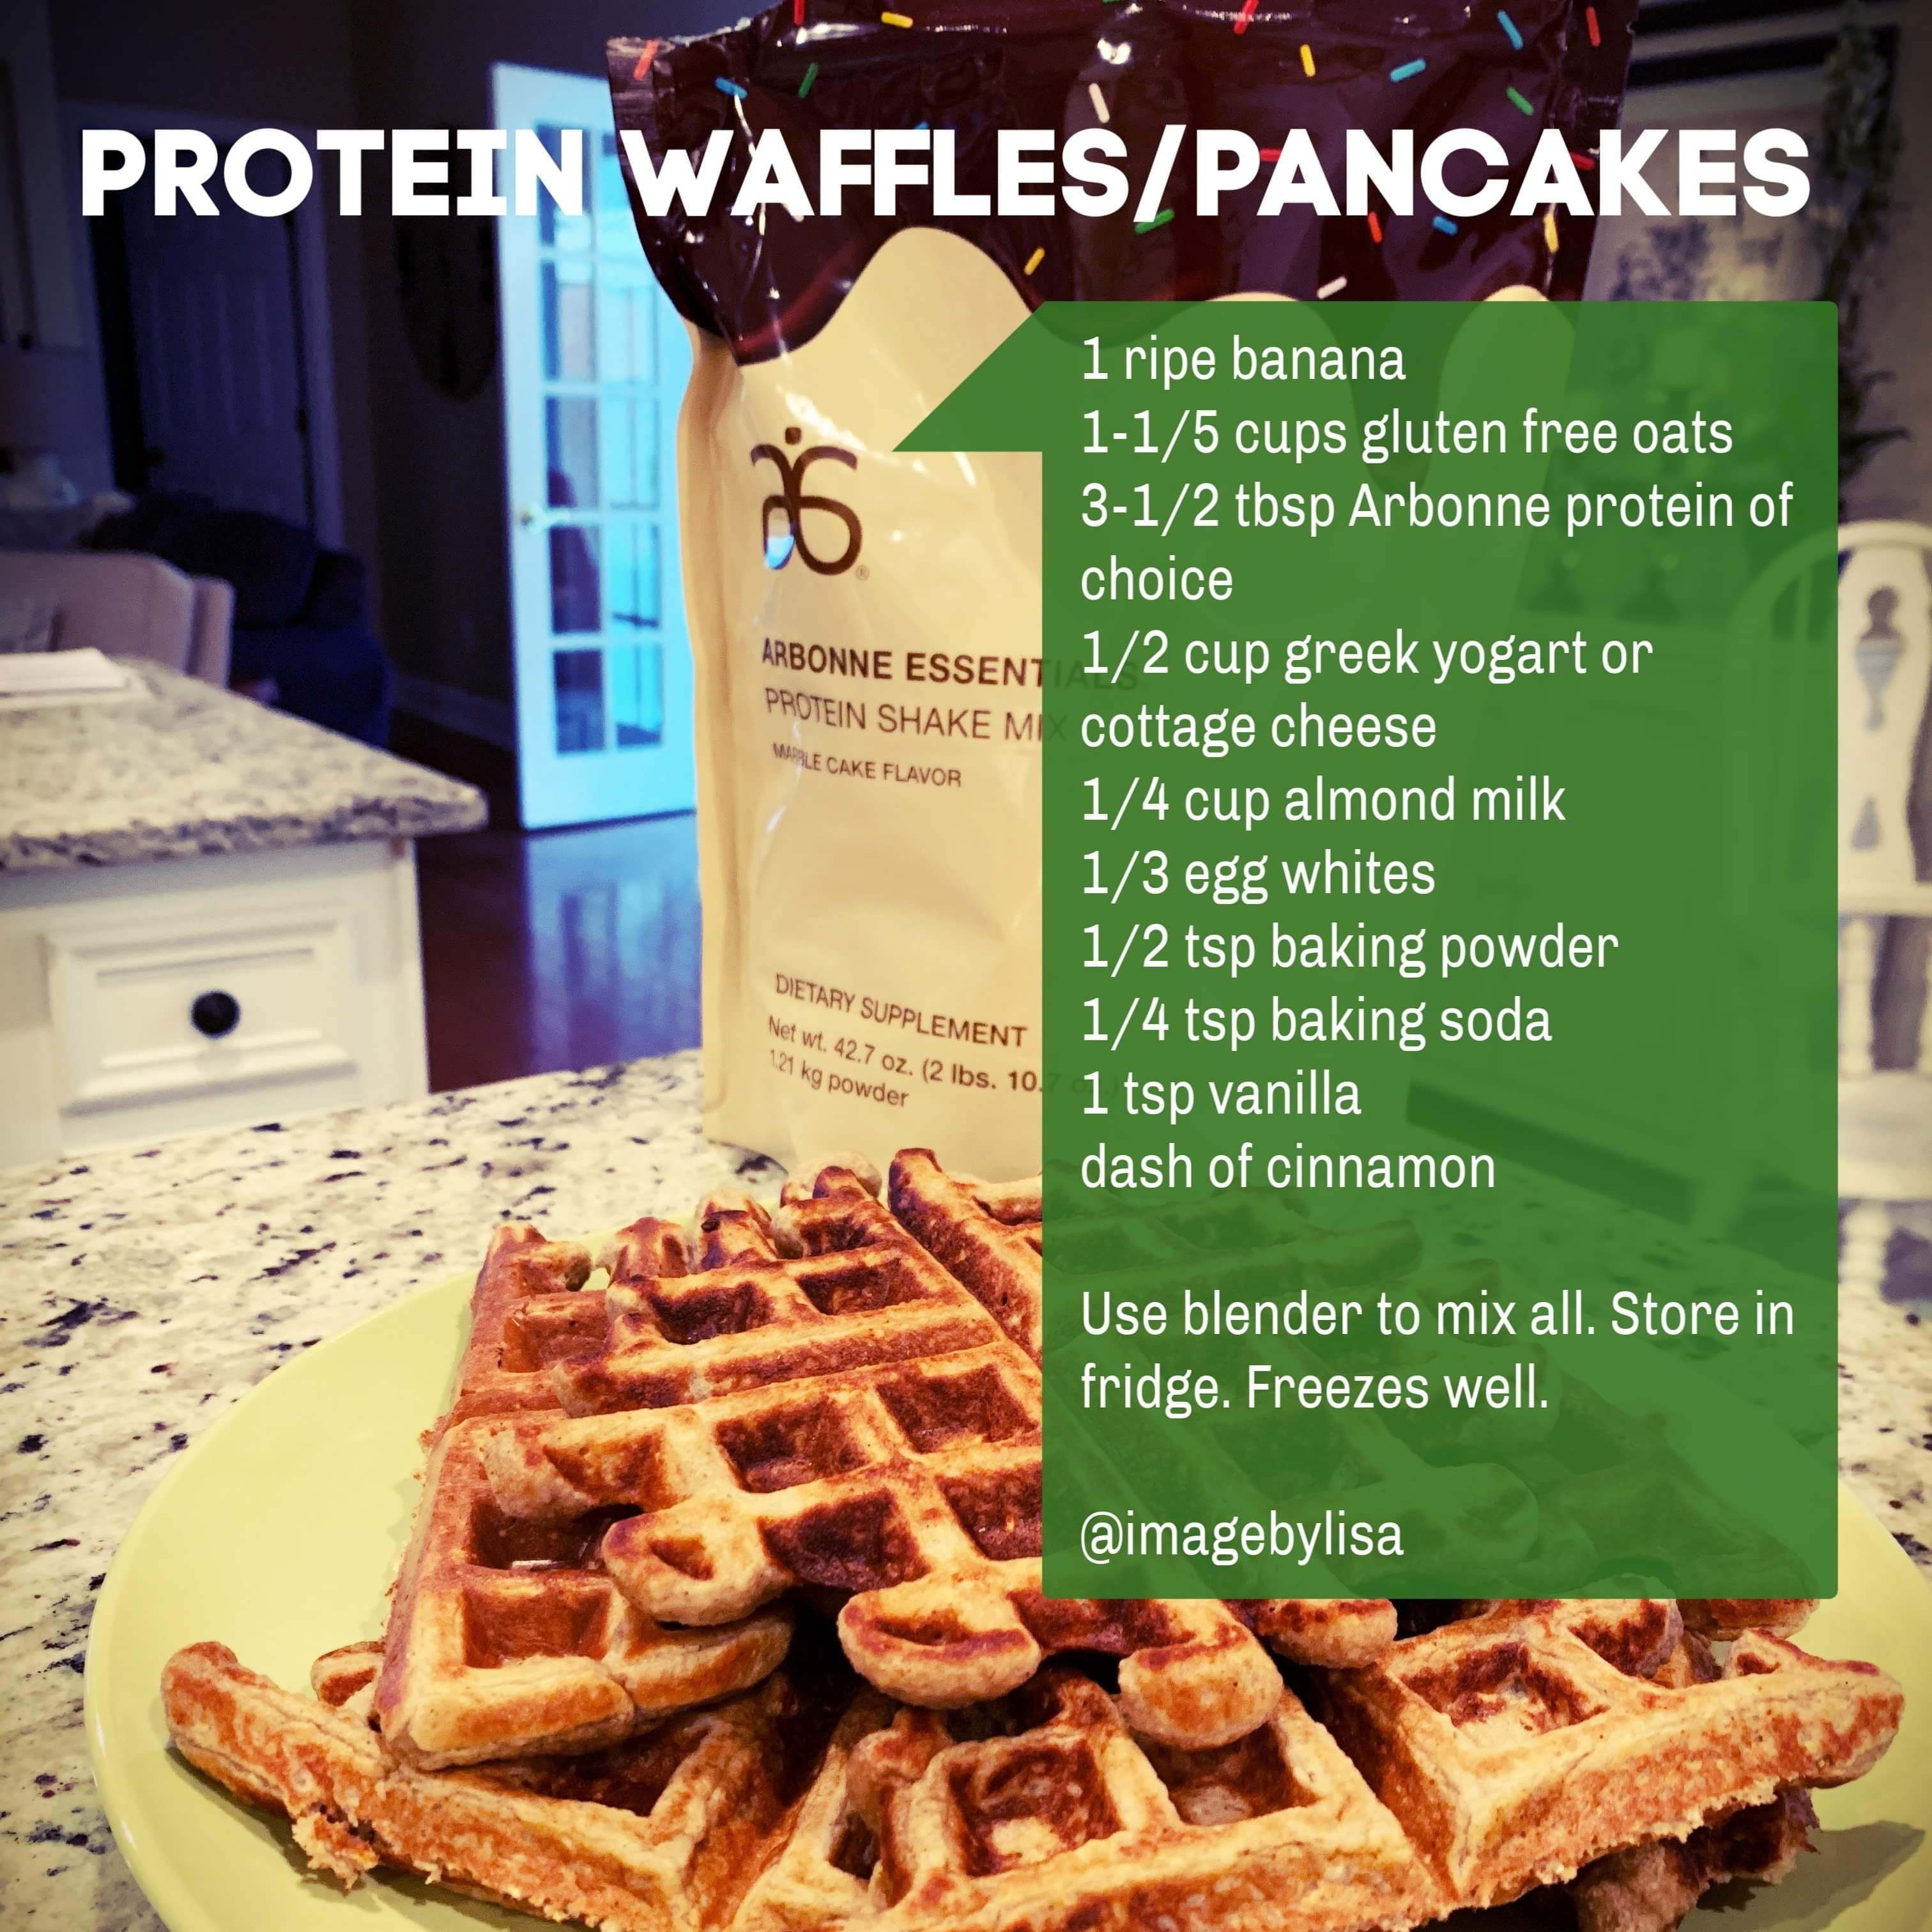 Protein Waffles Pancakes Proteinpowderpancakes Arbonne Vegan Protein Powders Used To Make The Yum Arbonne Recipes Vegan Protein Powder Arbonne Detox Recipes